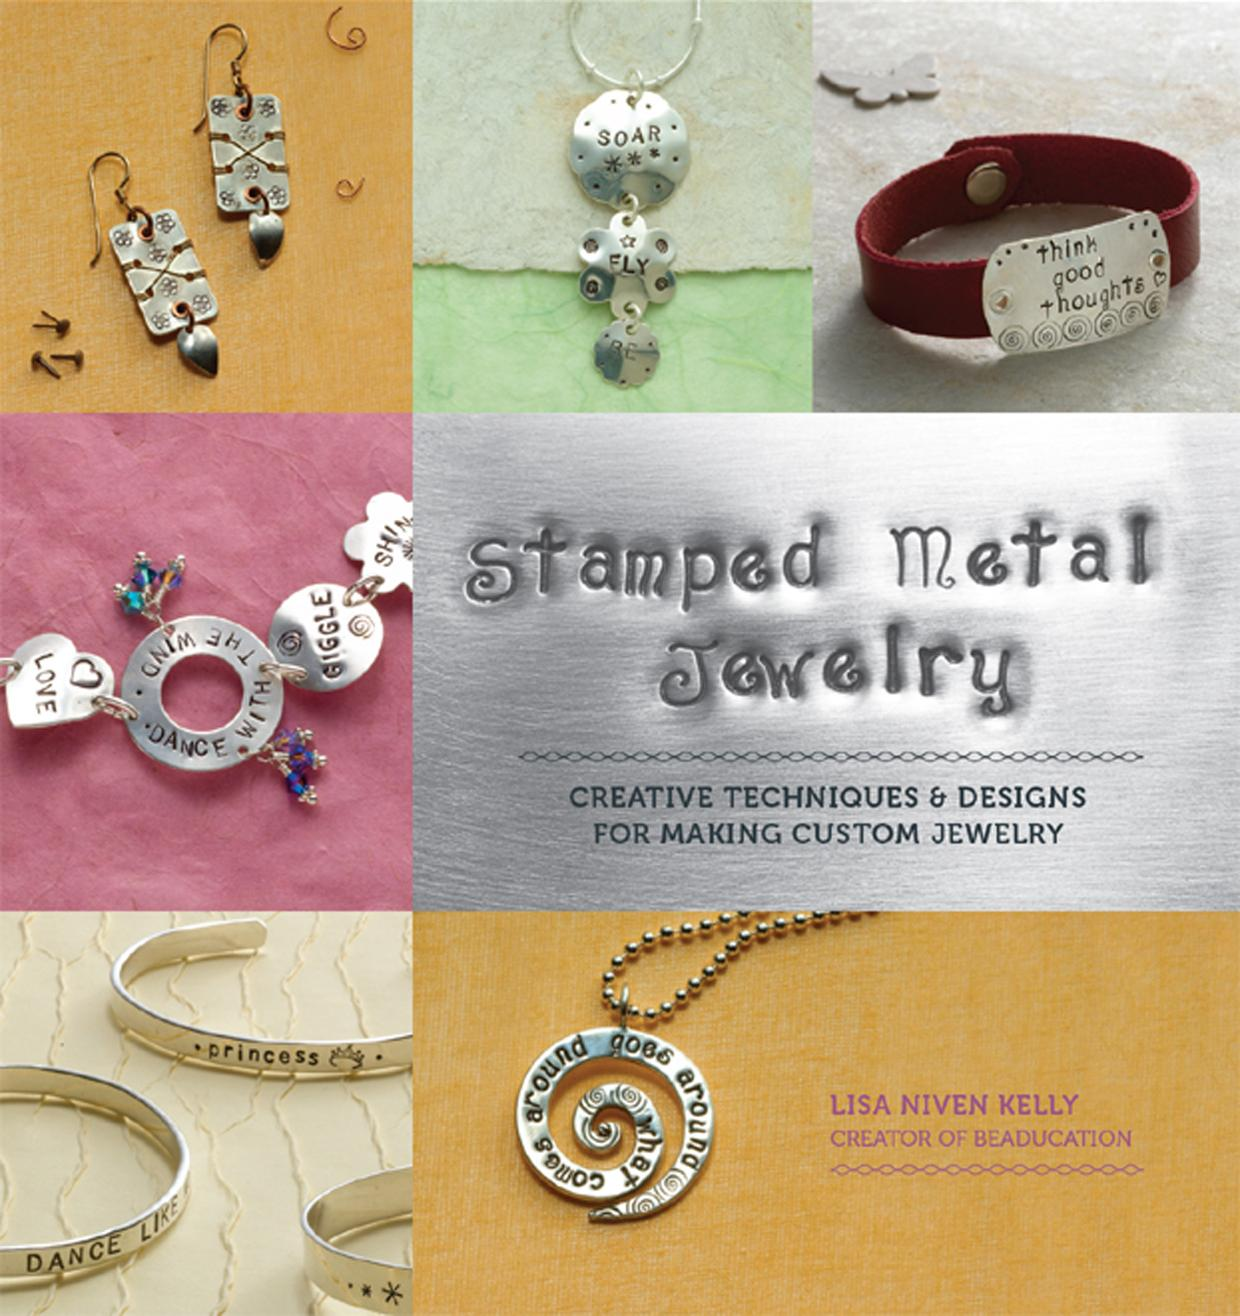 Stamped Metal Jewelry : Creative Techniques and Designs for Making Custom Jewelry